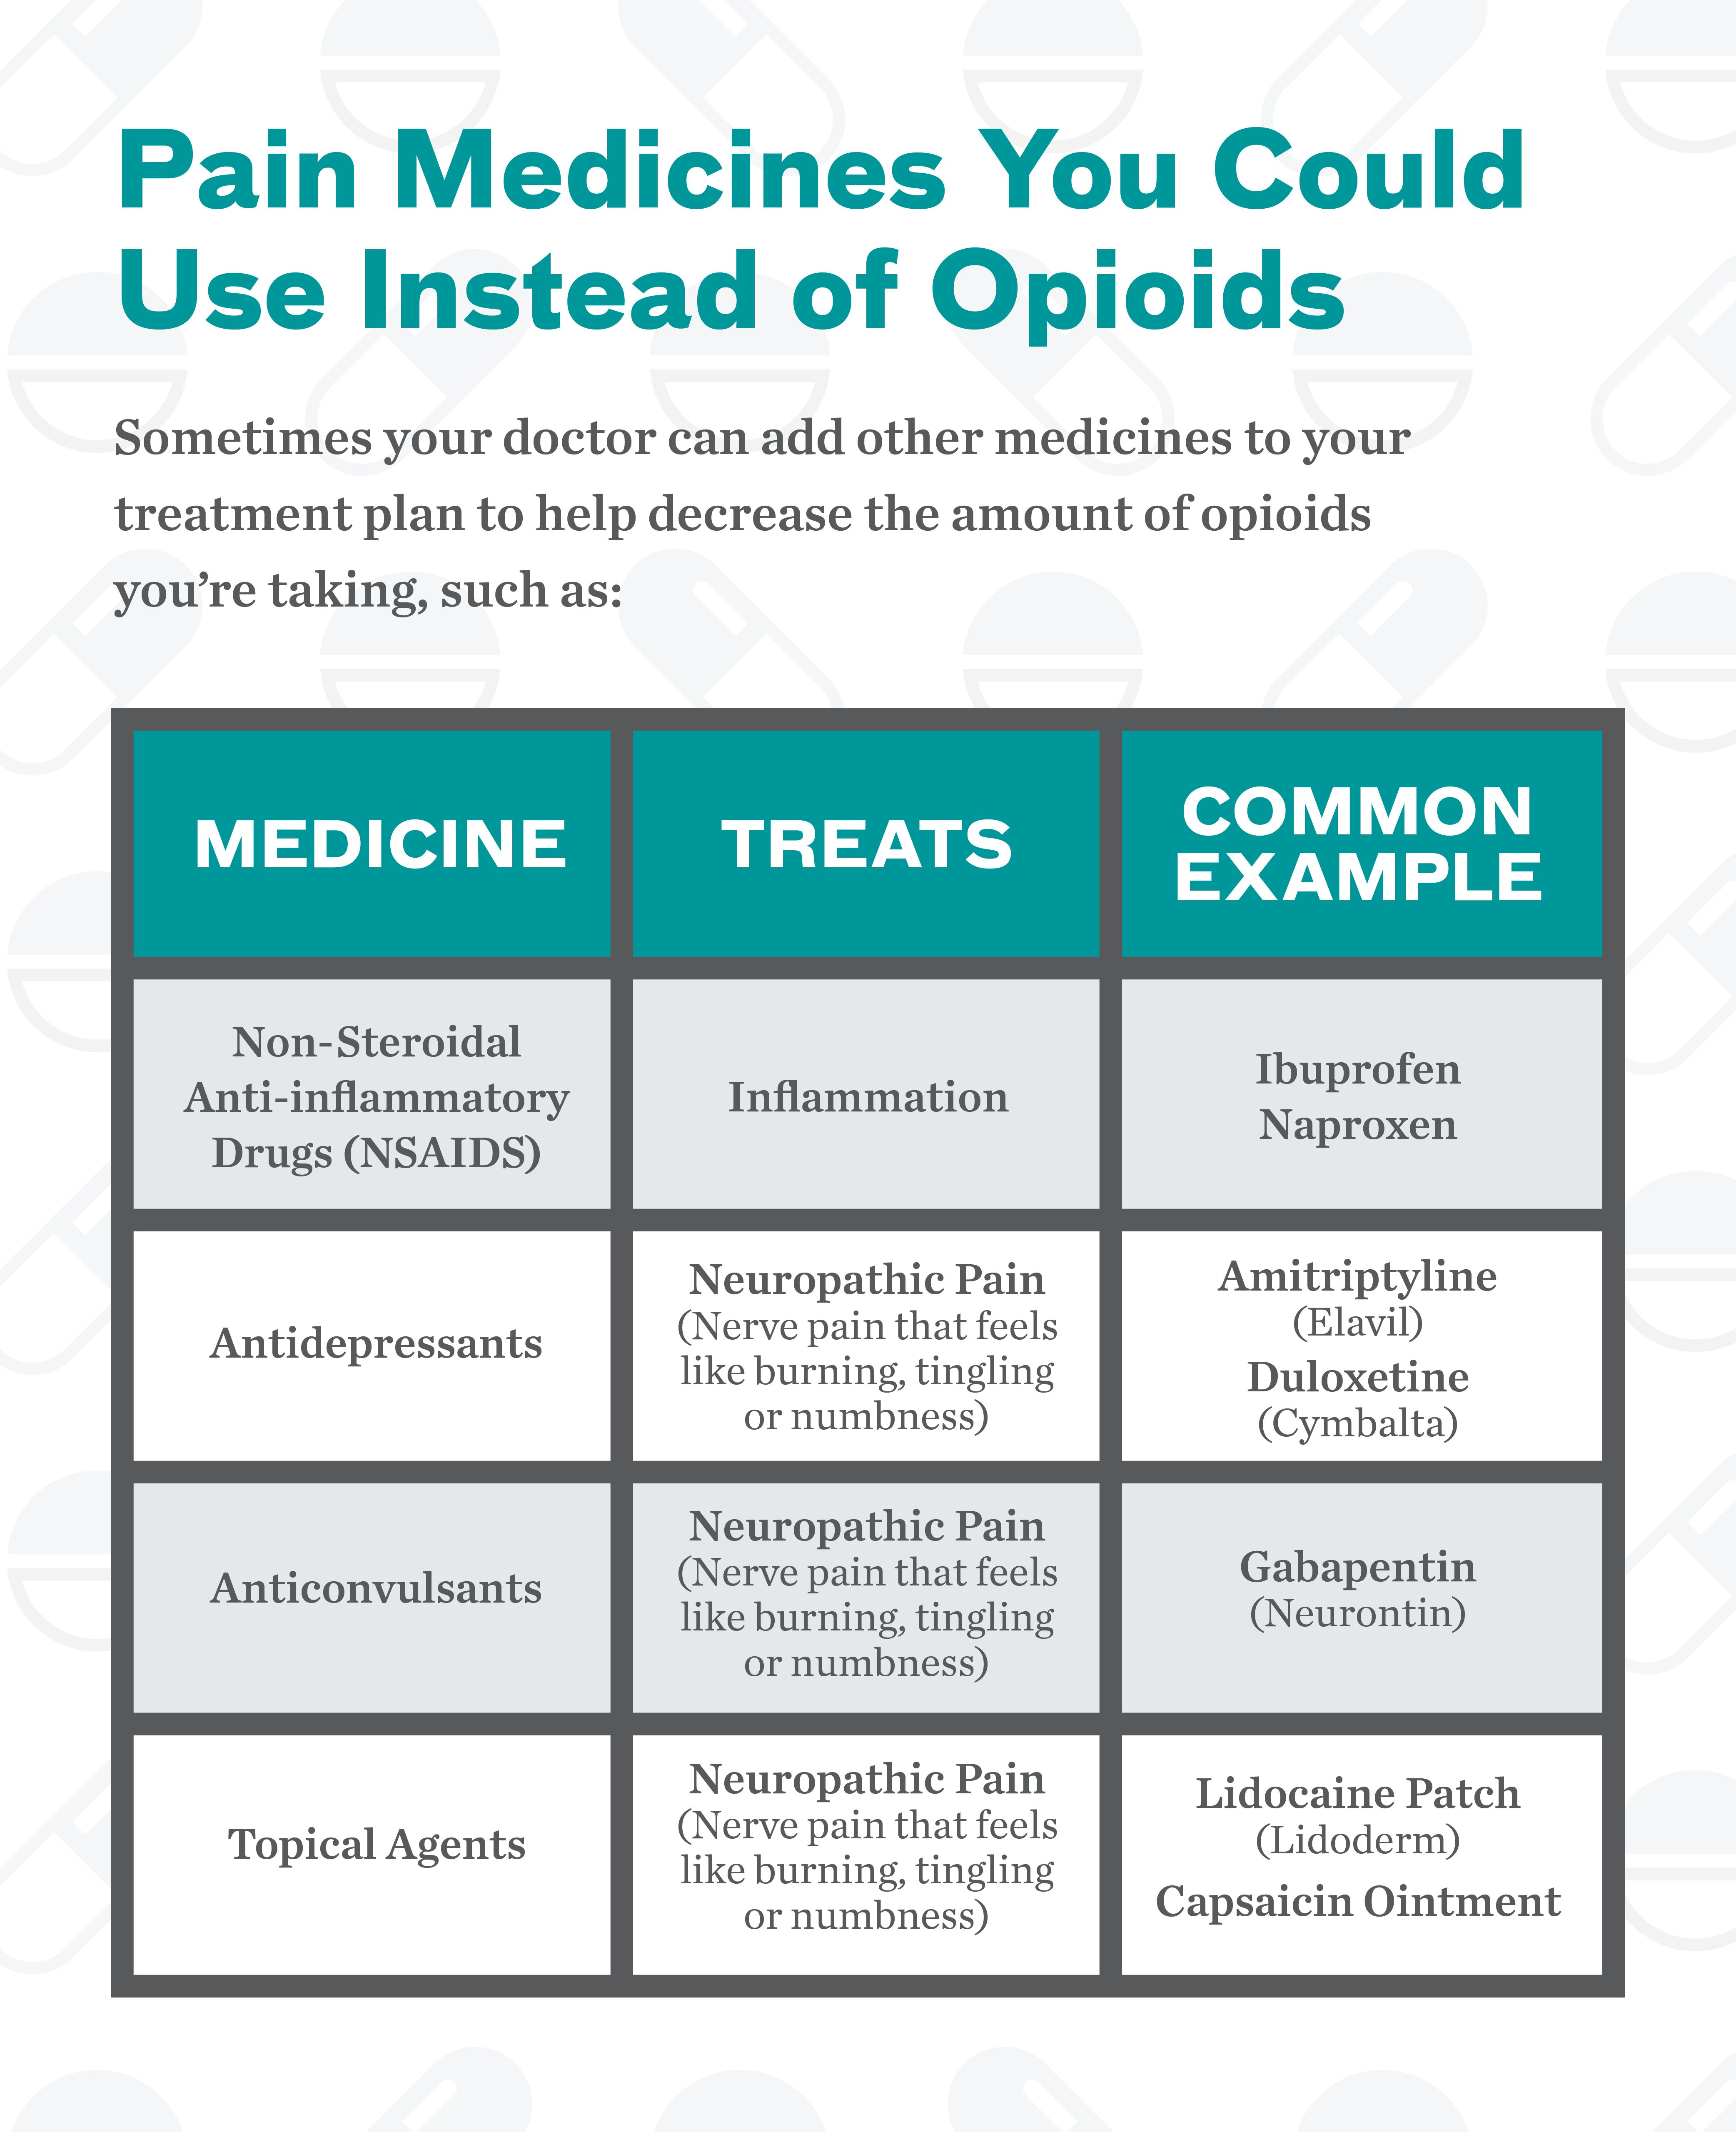 Did you know there are ways to manage your pain besides taking opioids? Some alternatives include taking less strong opioid medicines or receiving body therapy, such as massages.